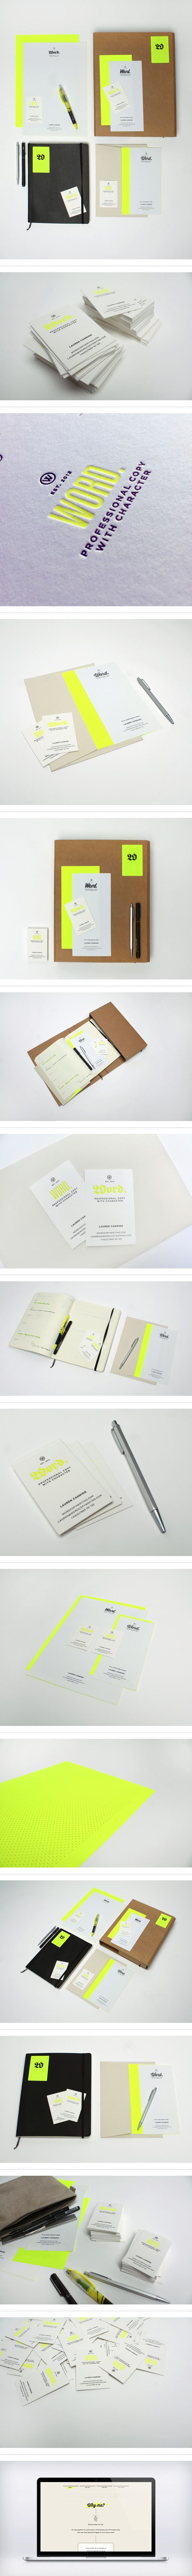 Word // by Passport // via Behance // branding // identity // corporate id // consistency // identity system